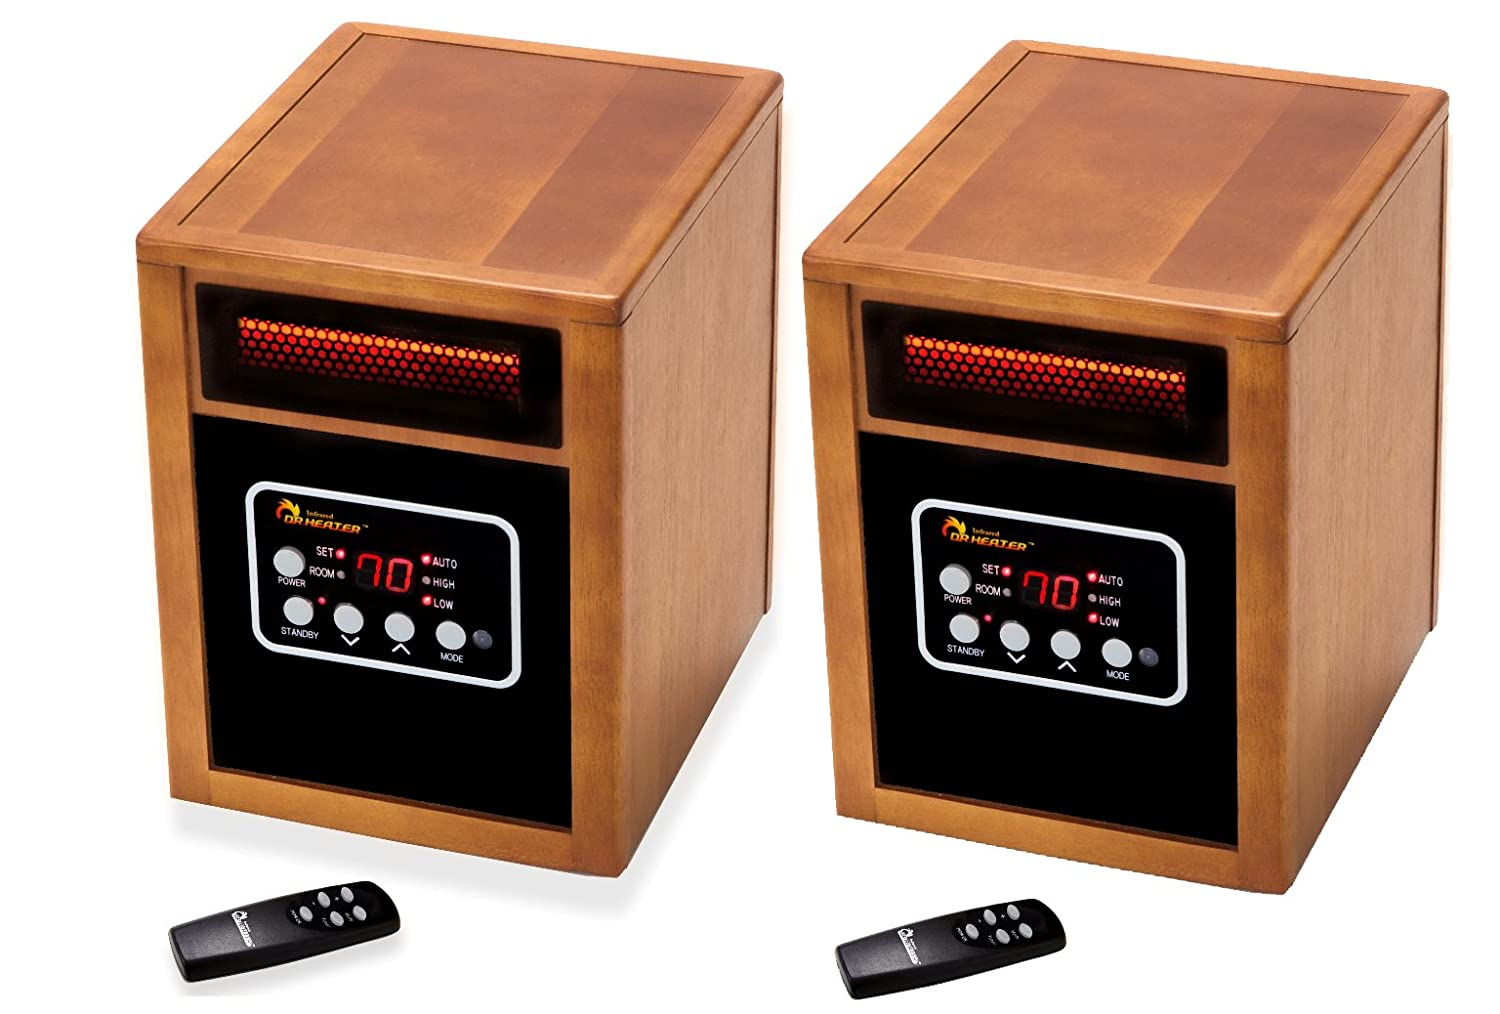 Dr Infrared Heater, DR968 Quartz Plus PTC Infrared Portable Space Heater Dr Heater USA